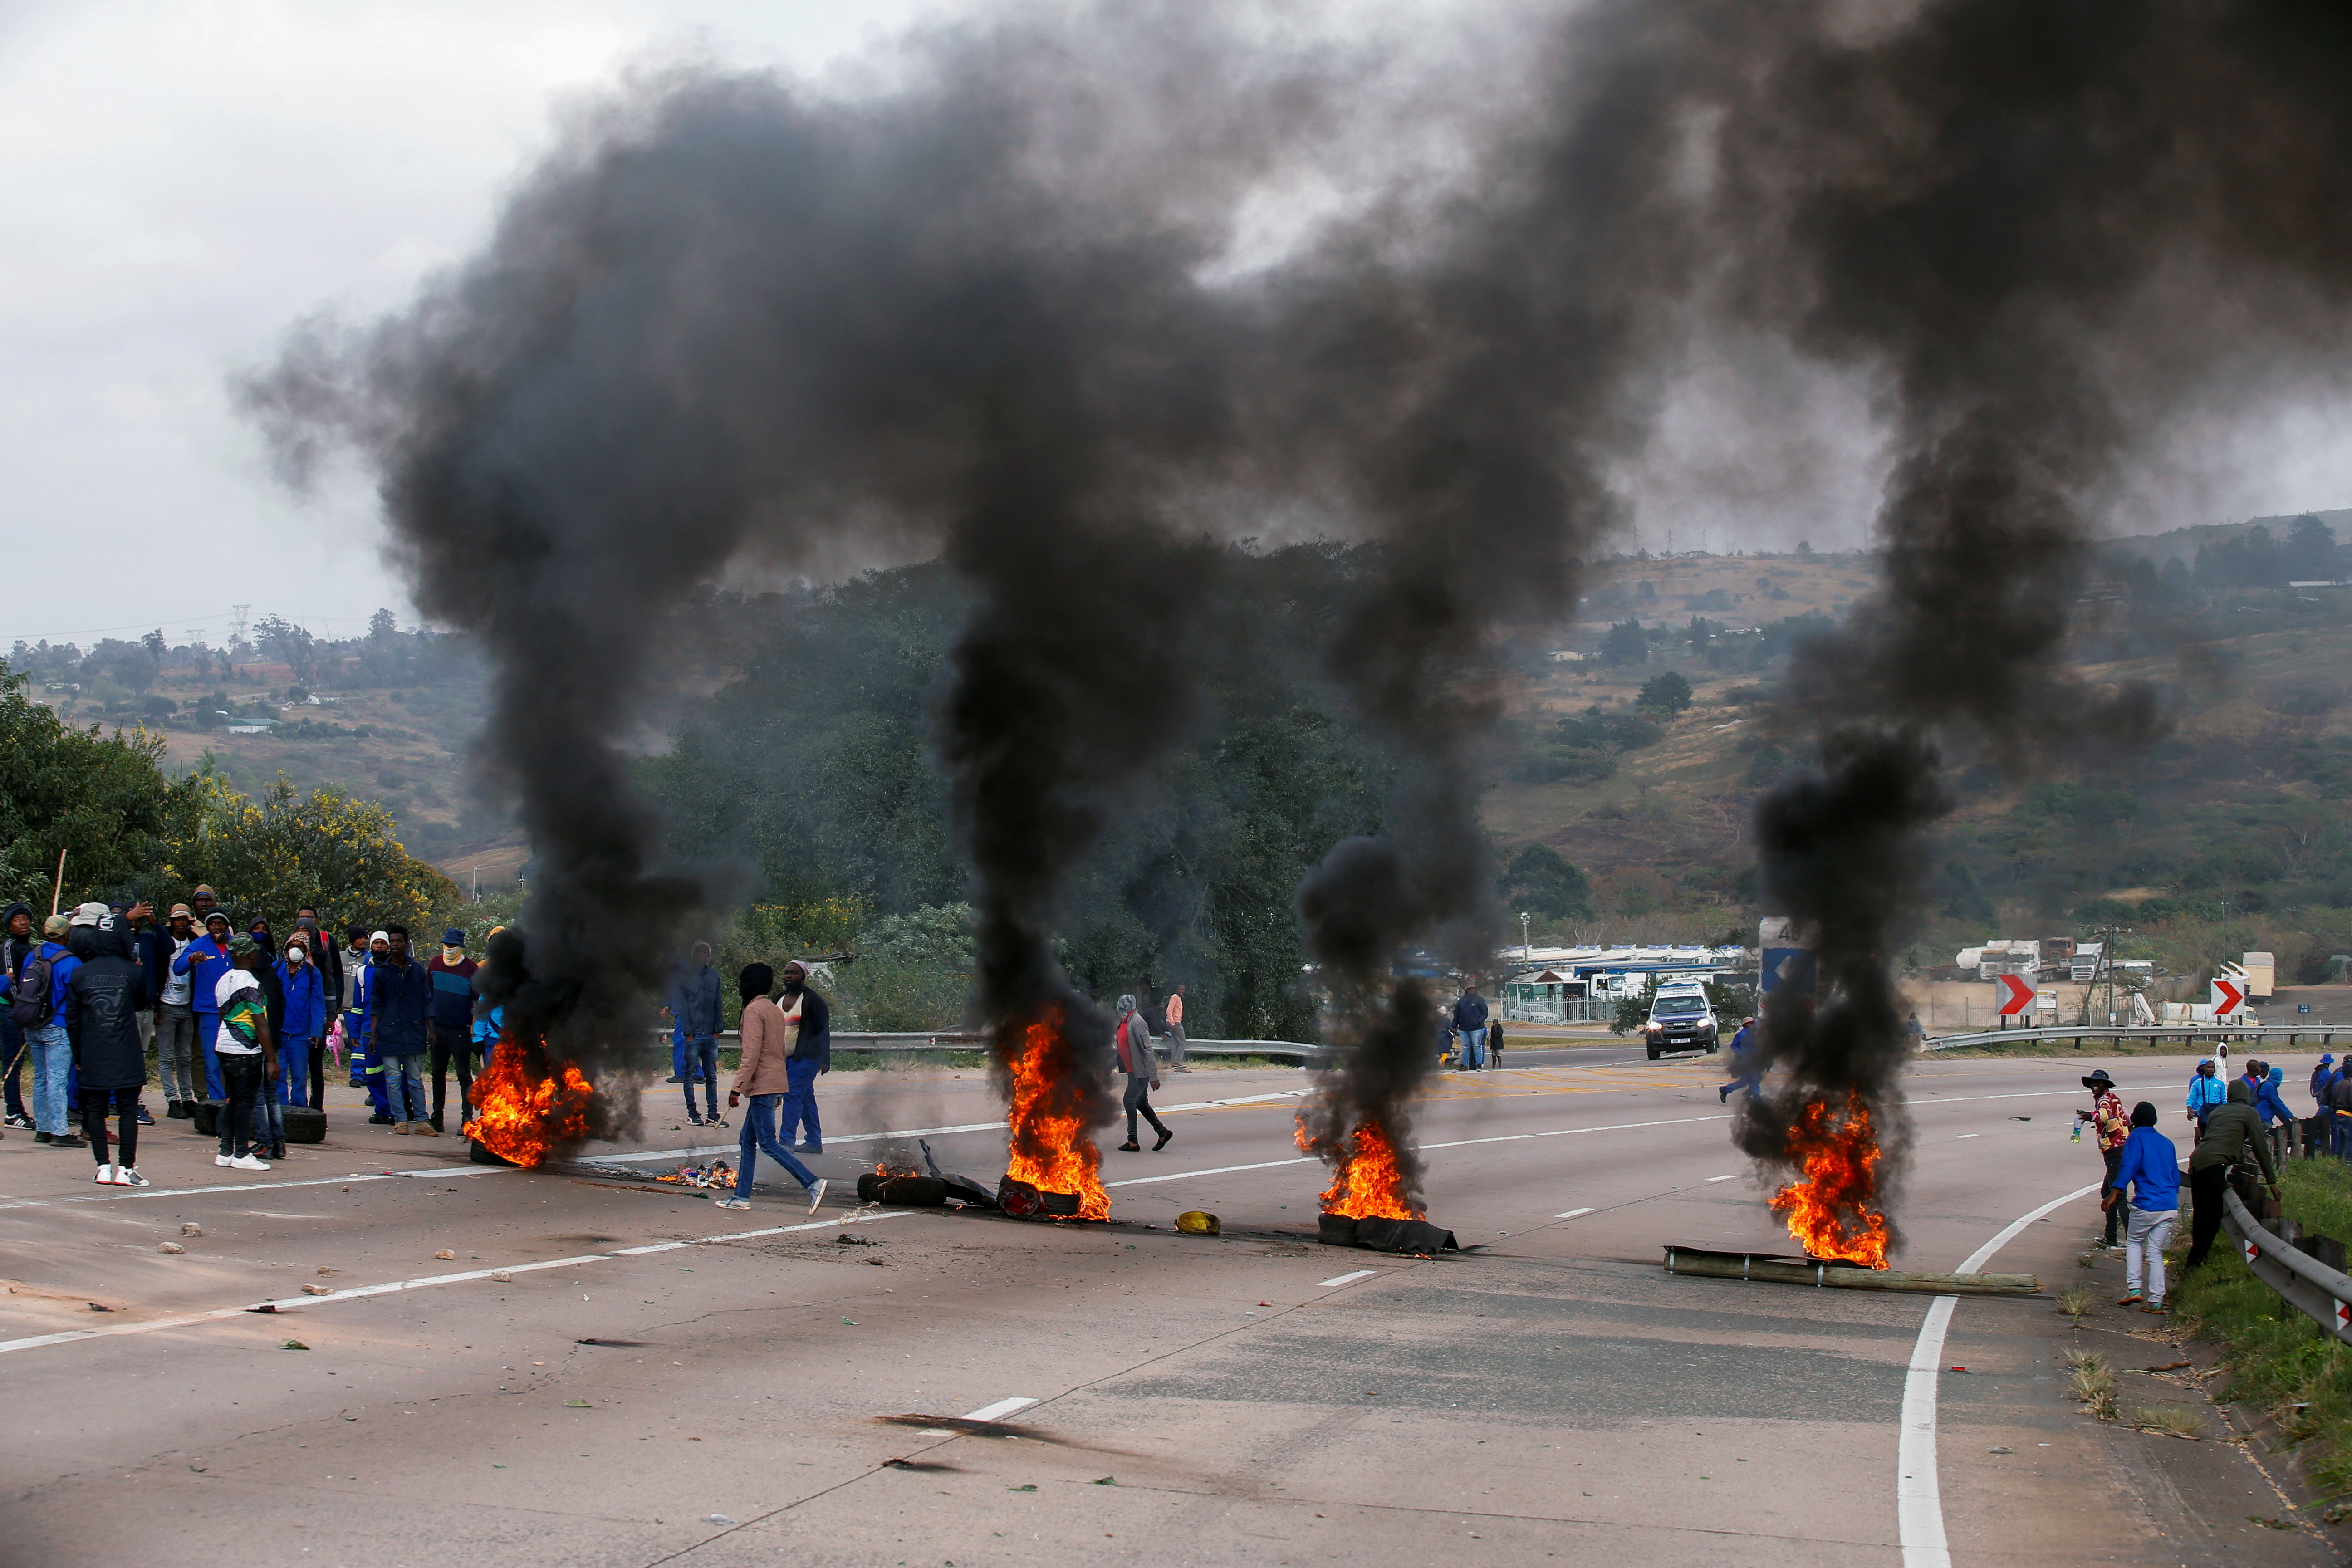 Supporters of former South African President Jacob Zuma block the freeway with burning tyres during a protest in Peacevale, South Africa, July 9, 2021. REUTERS/Rogan Ward/File Photo